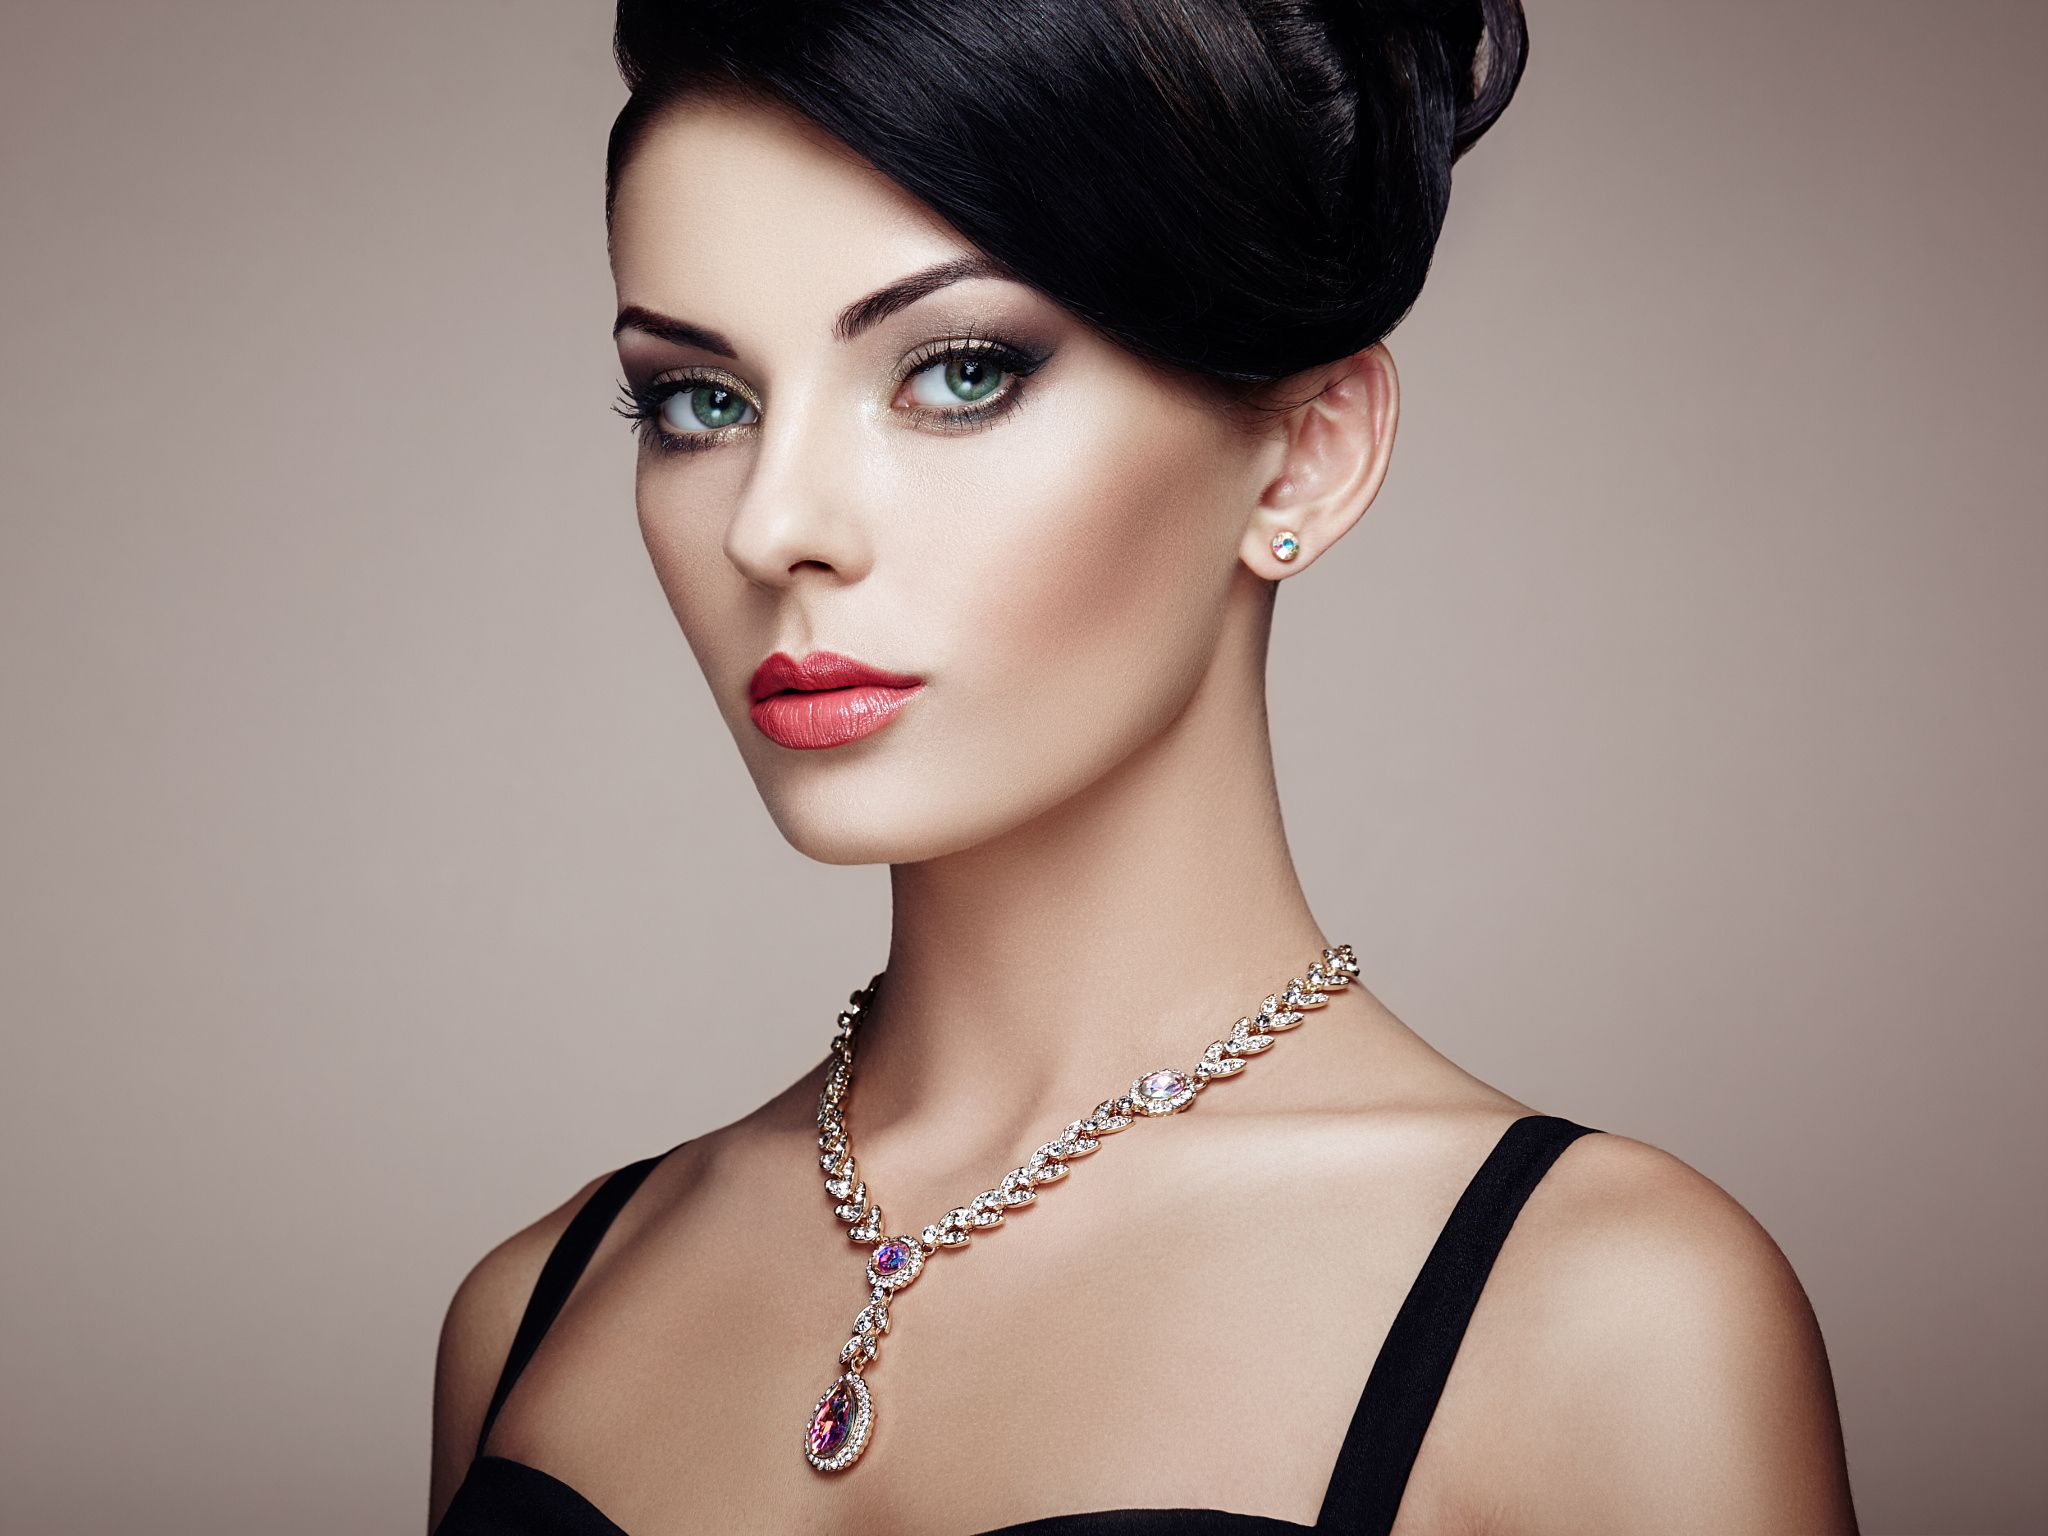 Fashion Portrait Of Young Beautiful Woman With Elegant